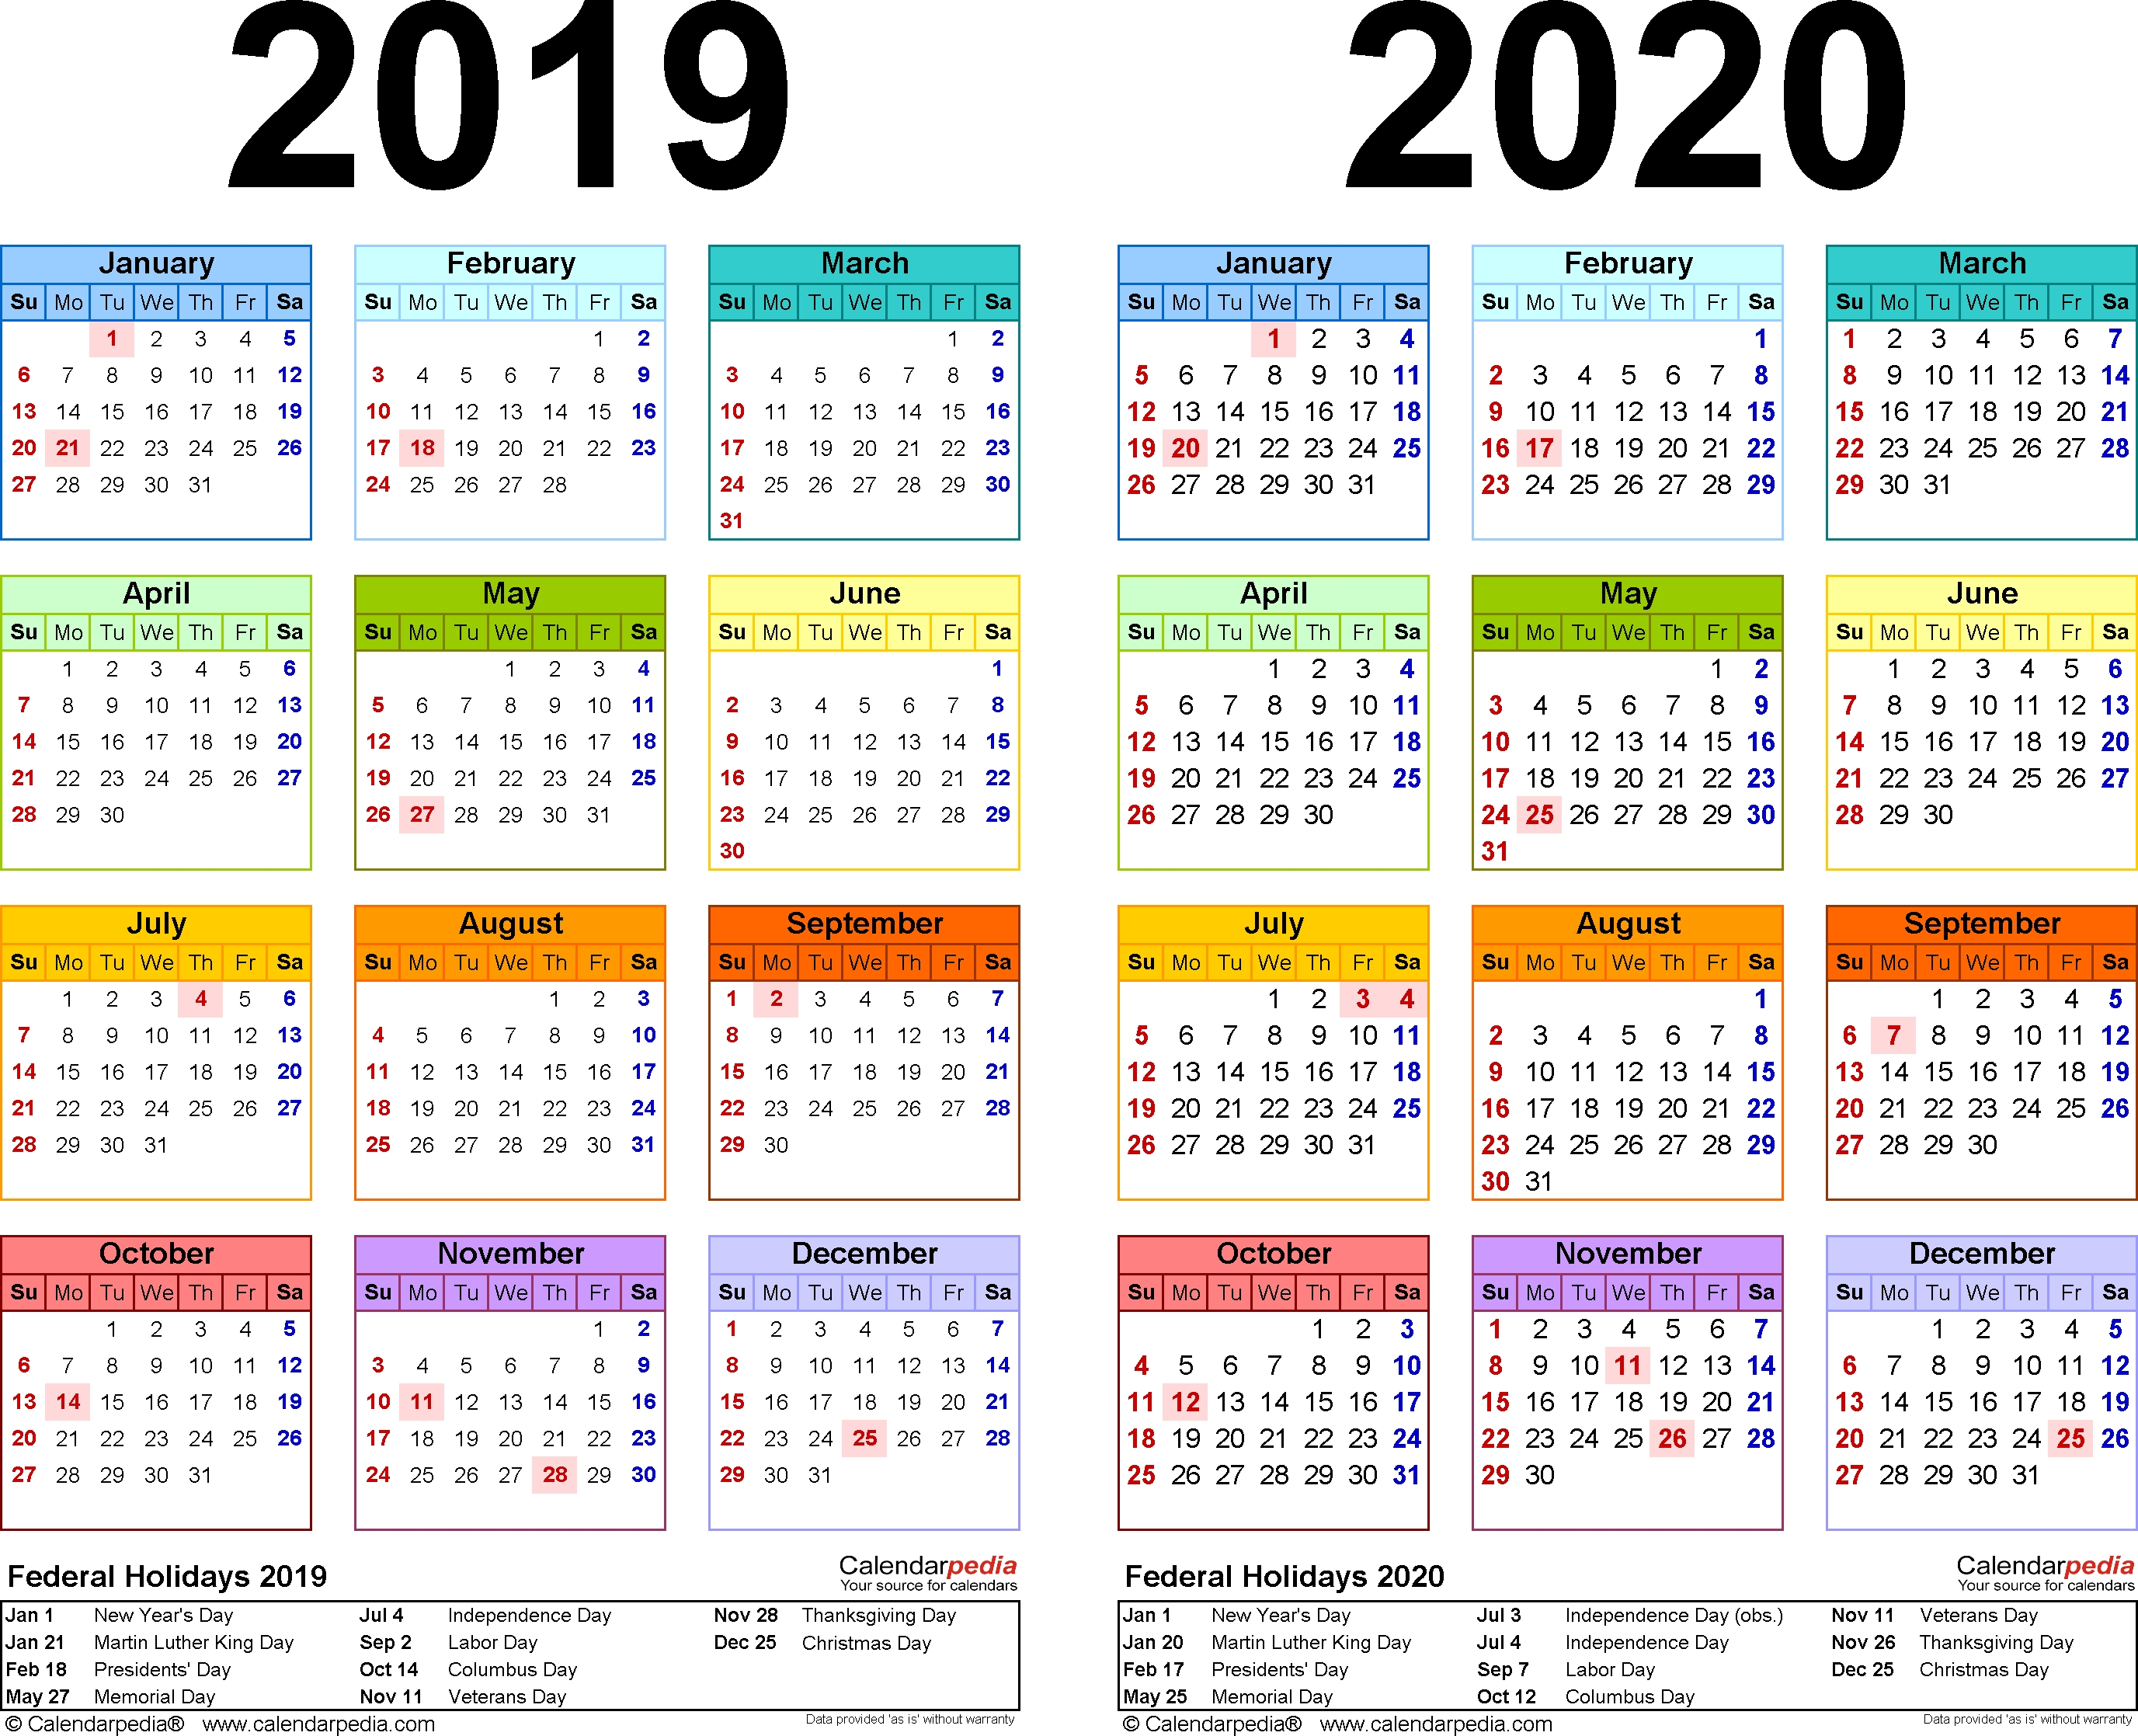 2019-2020 Calendar - Free Printable Two-Year Word Calendars for Blank Calendar Pages 2019-2020